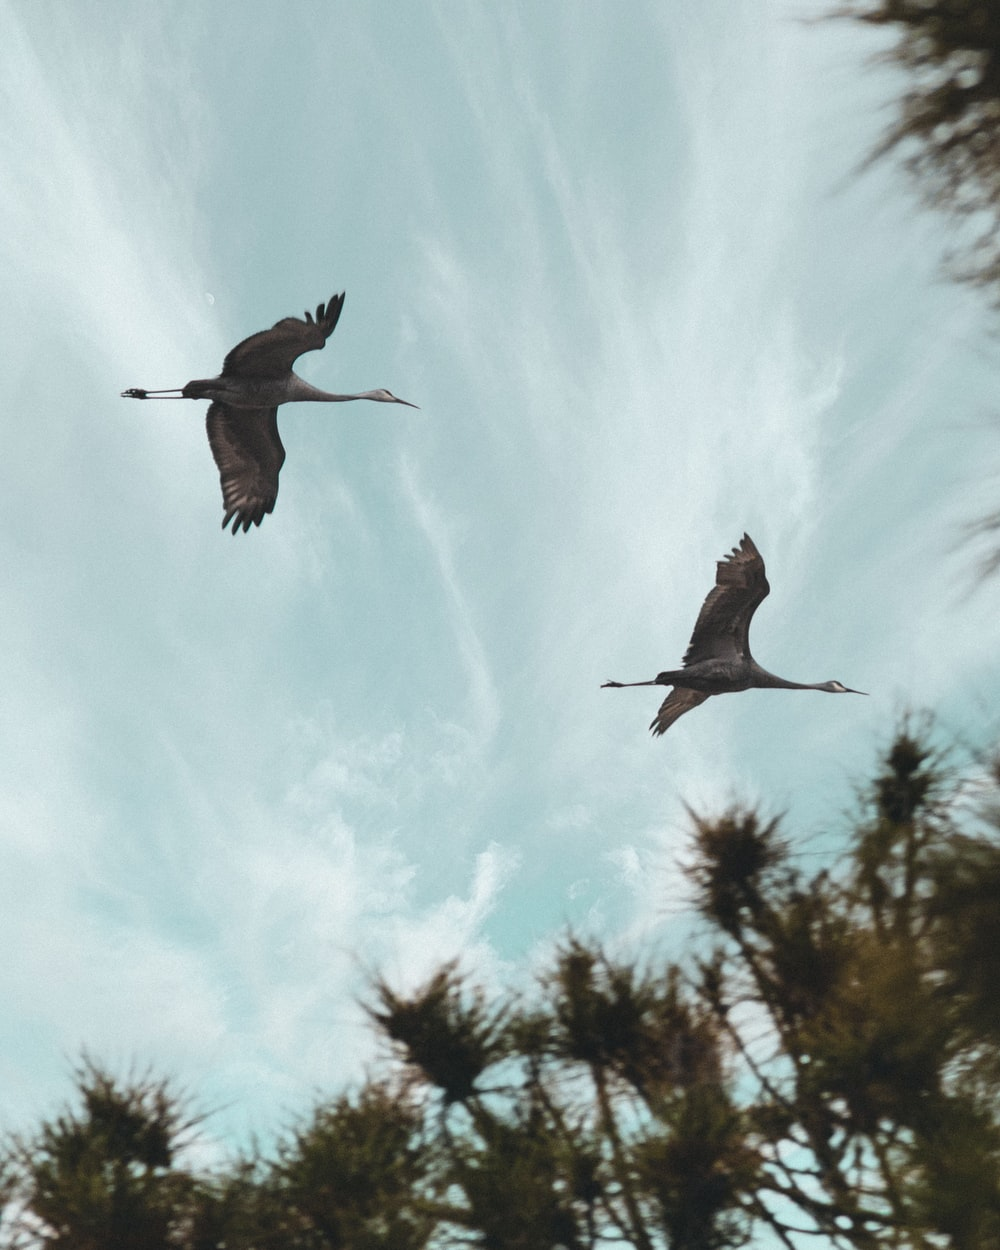 two birds flying under white clouds during daytime